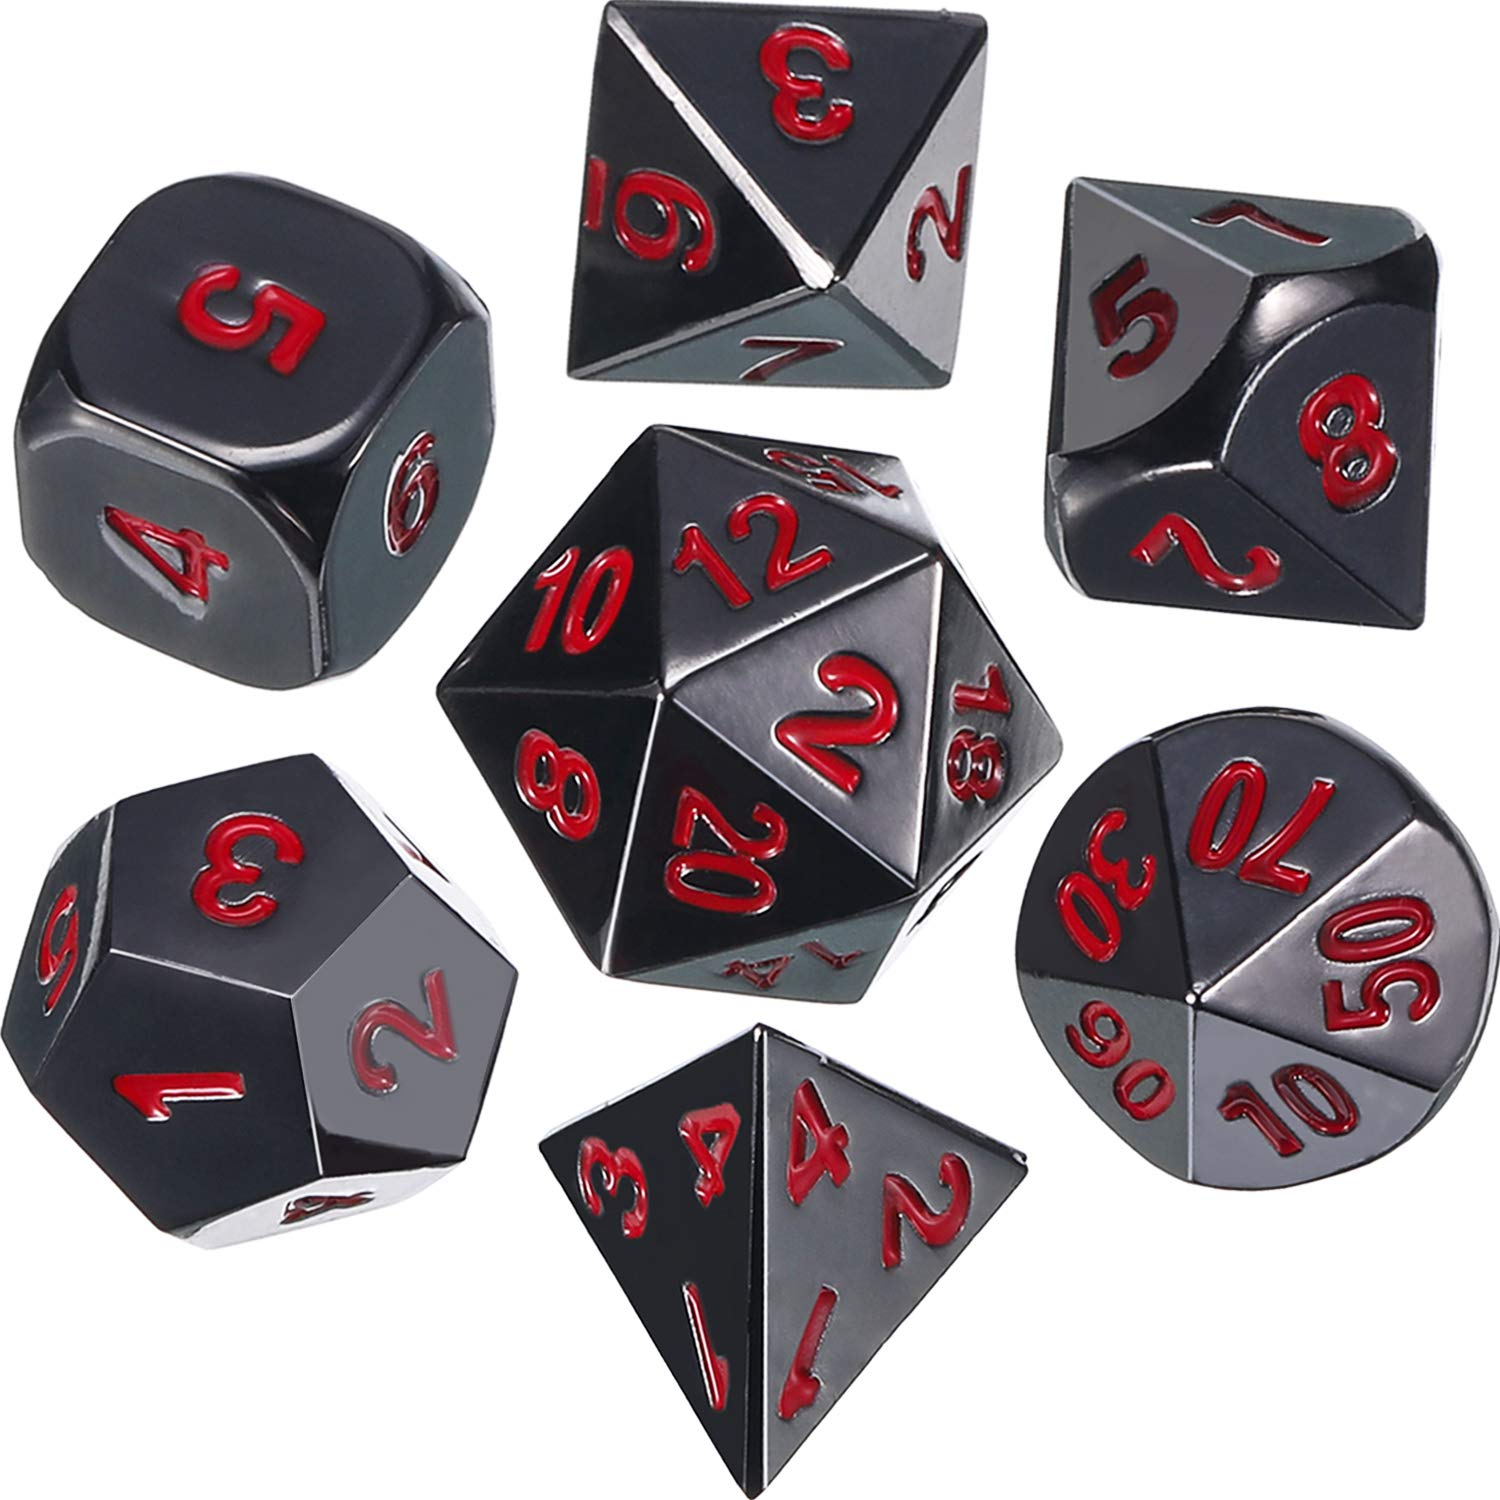 Frienda Zinc Alloy Metal Polyhedral 7-Die Dice Set for Dungeons and Dragons RPG Dice Gaming D&D Math Teaching, d20, d12, 2 Pieces d10 (00-90 and 0-9), d8, d6 and d4 (Black and Red) by Frienda